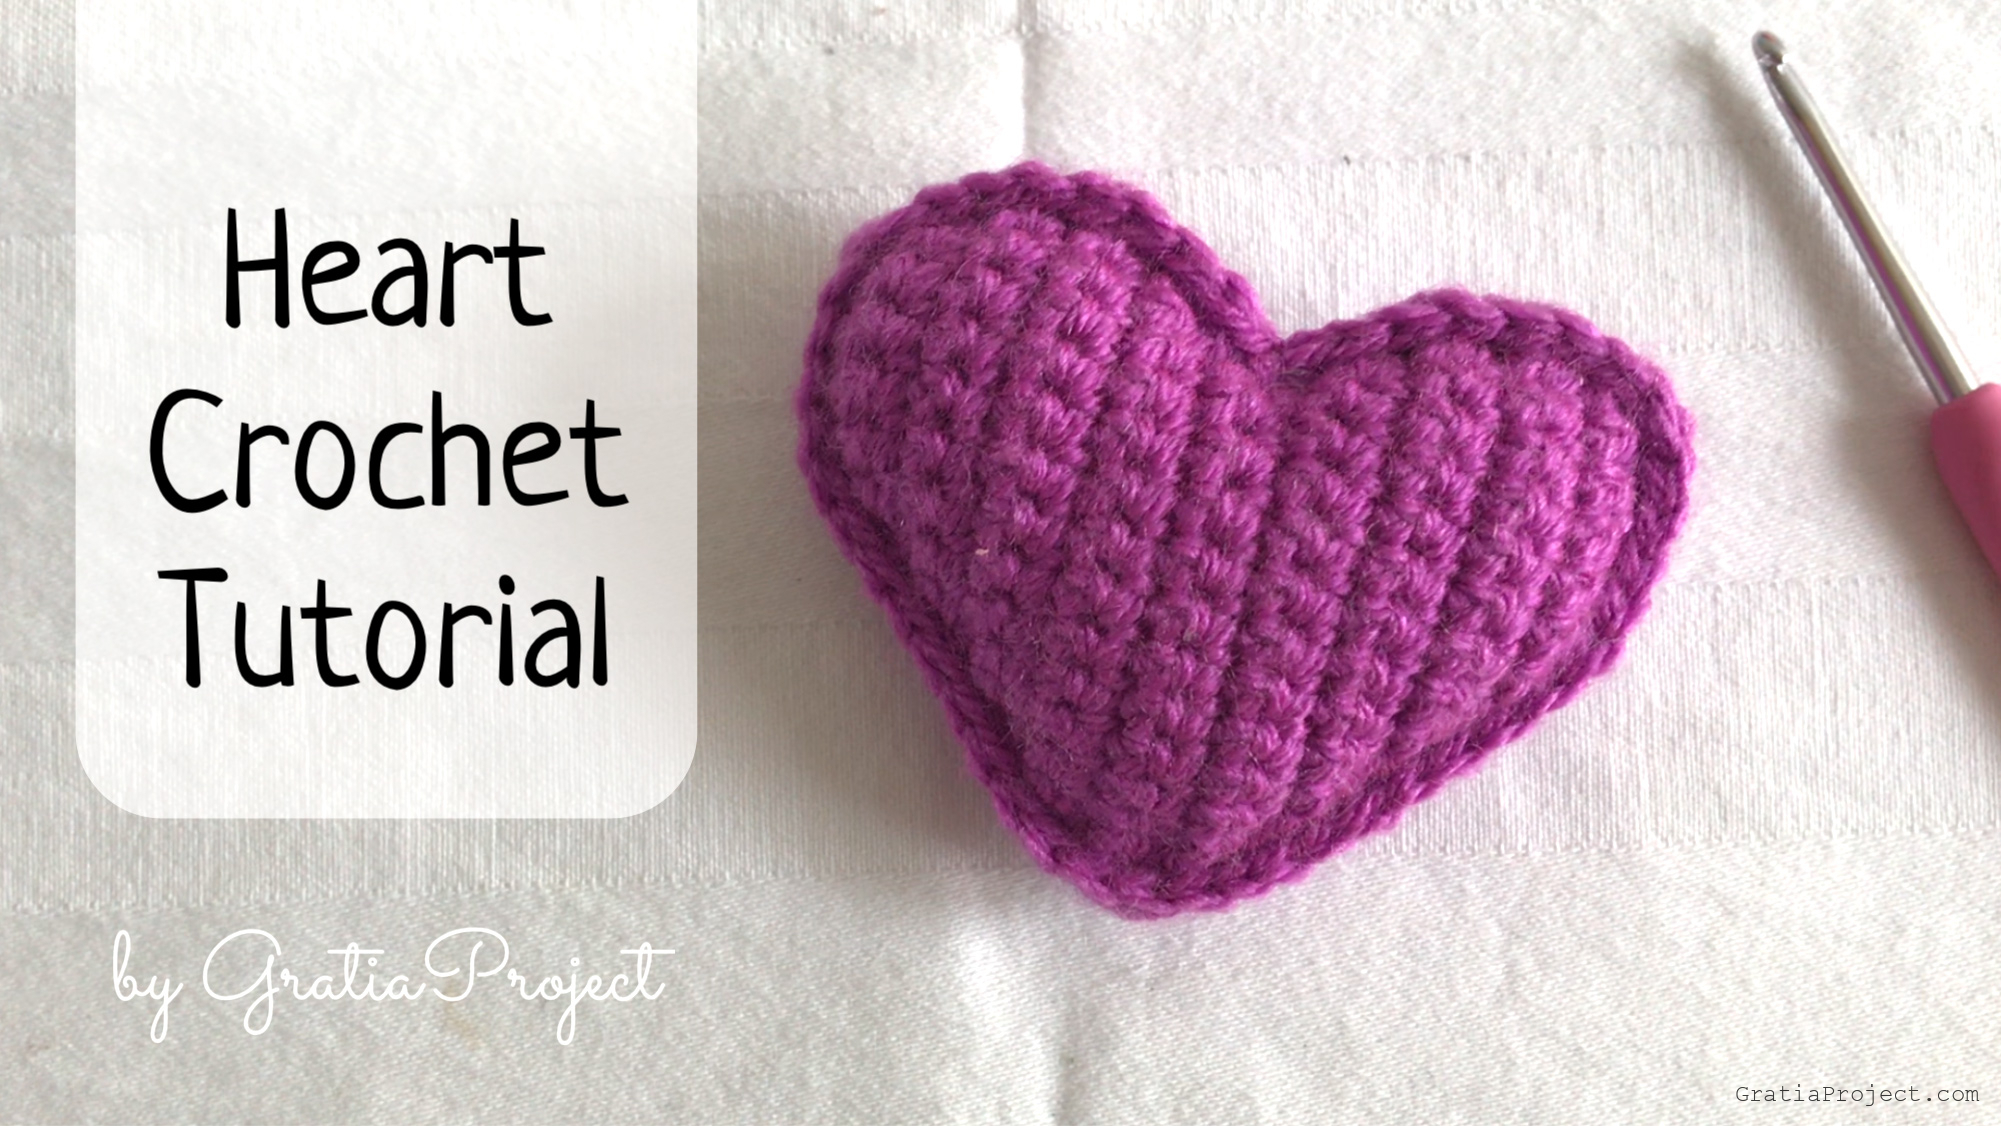 Video step-by-step tutorial of how to do Heart Crochet Tutorial